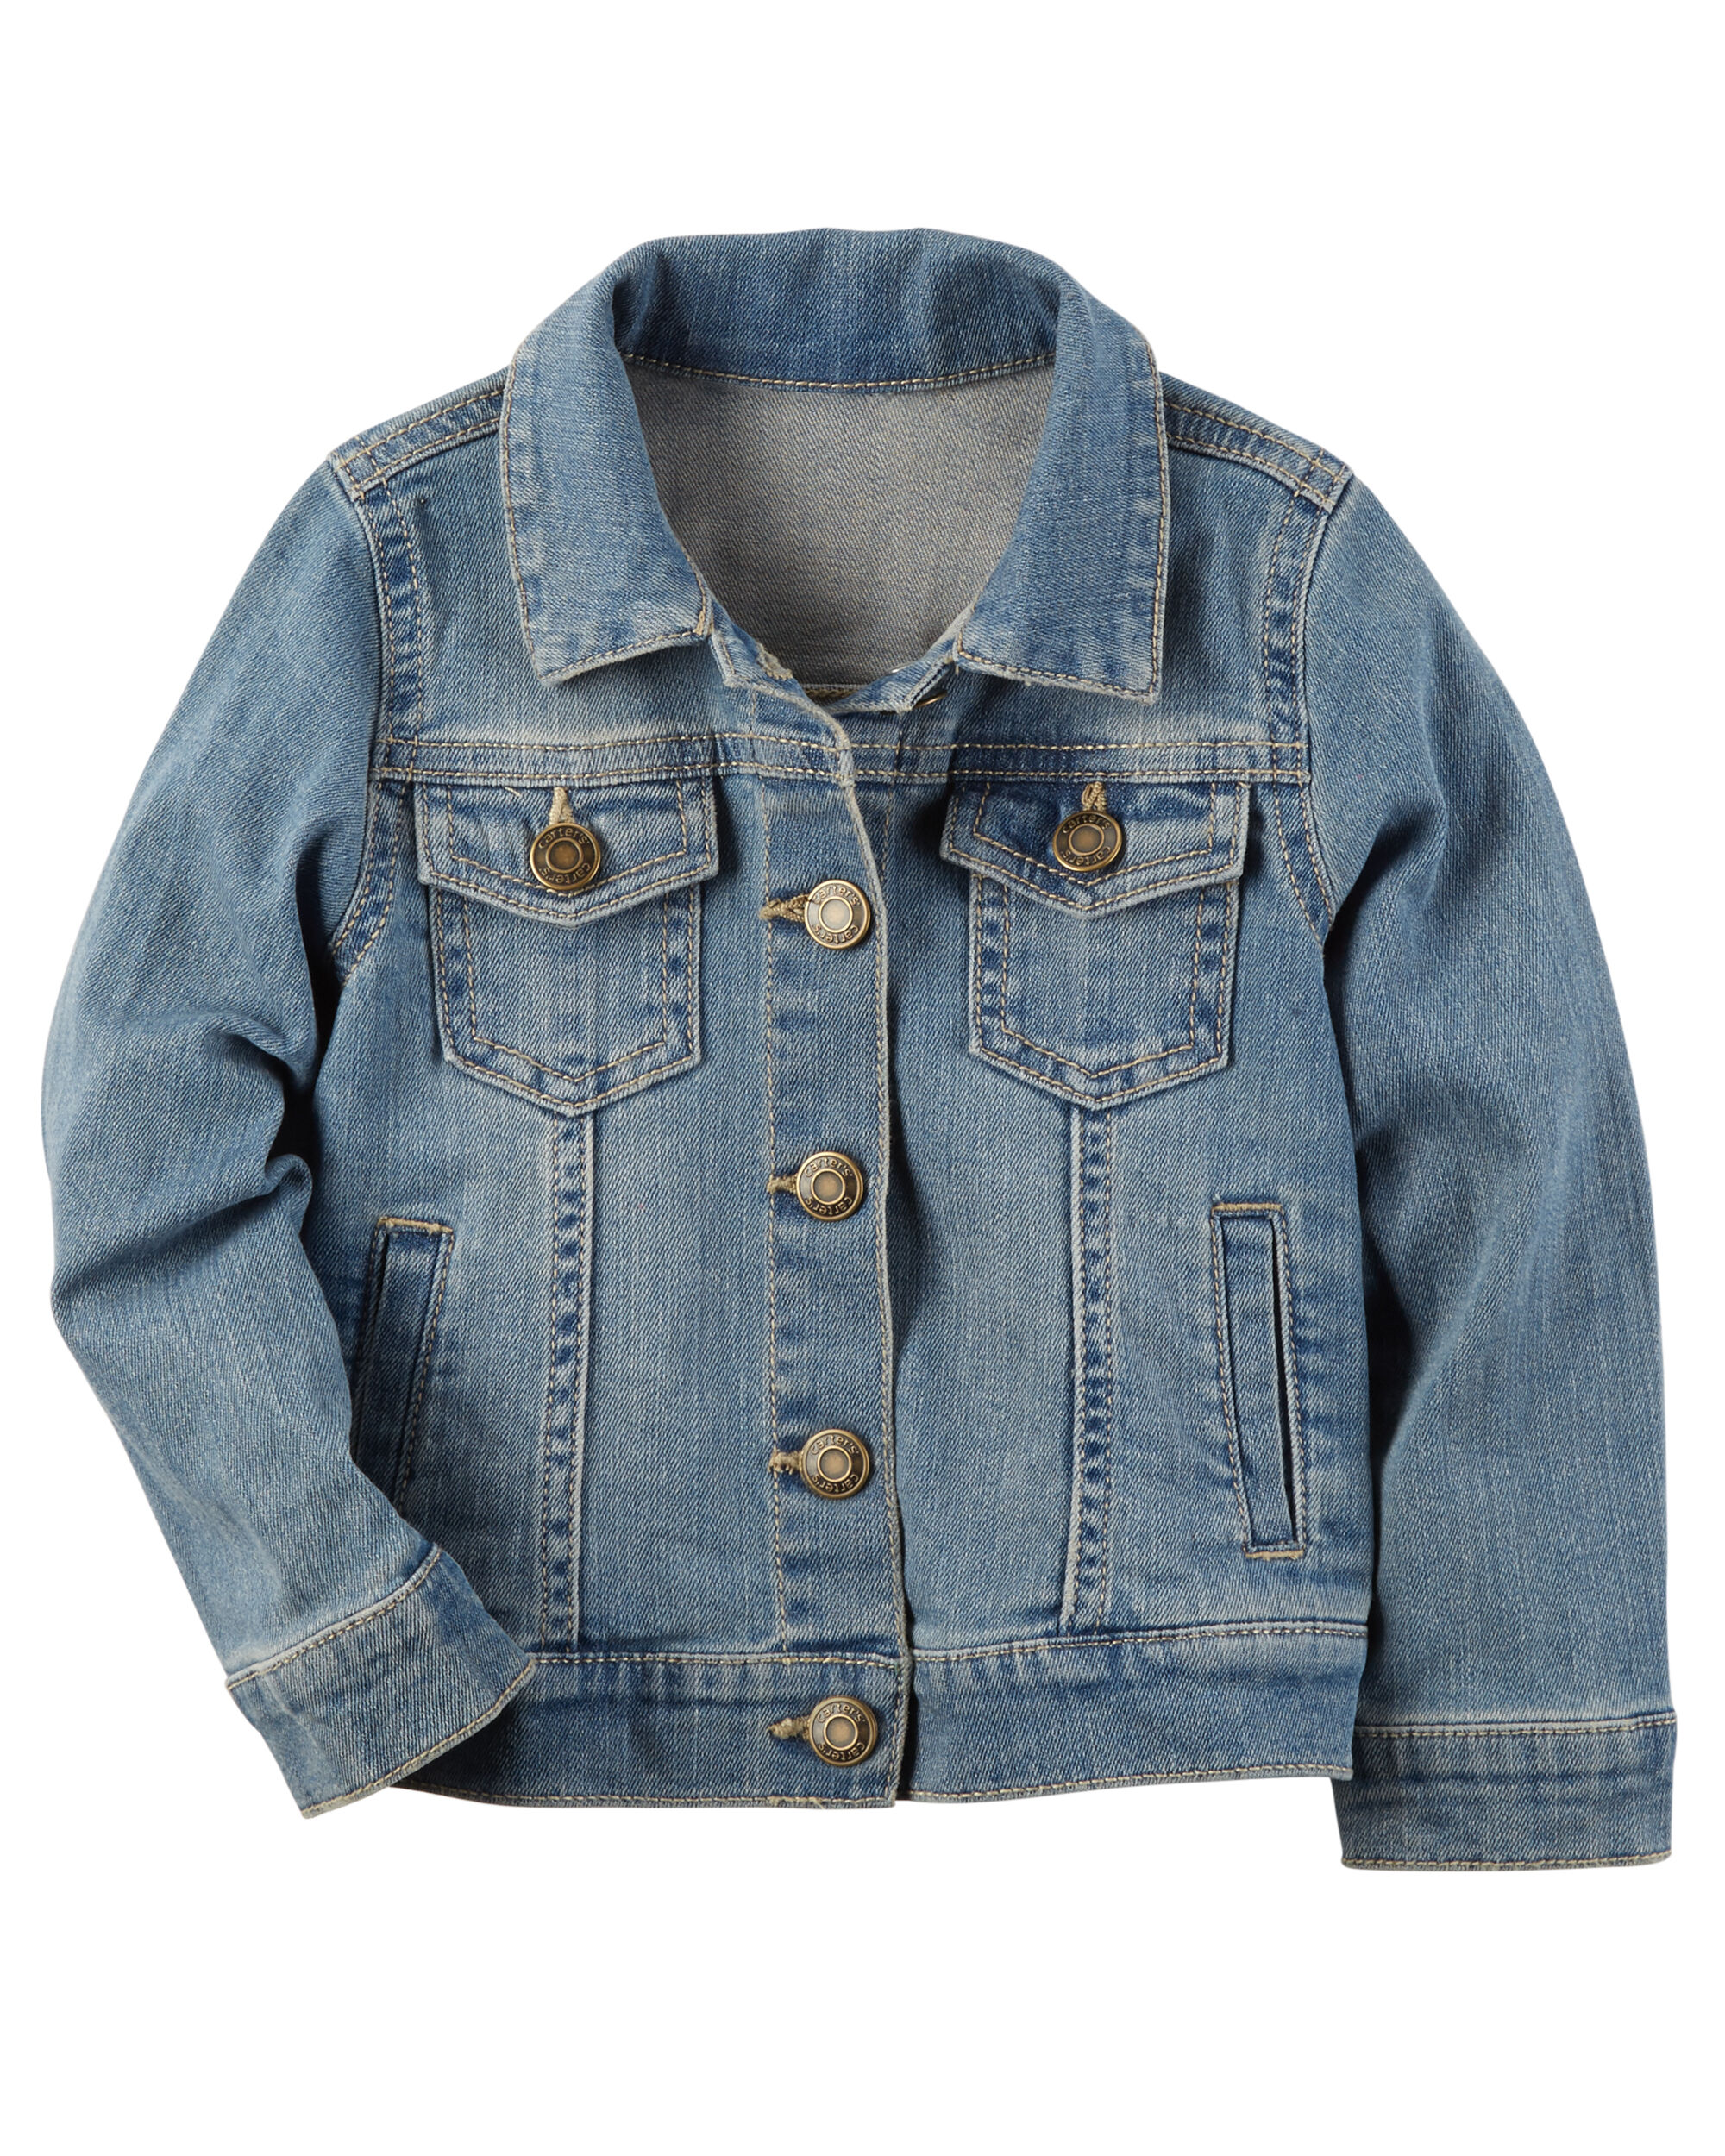 d36ab0dbccbb carters baby jacket